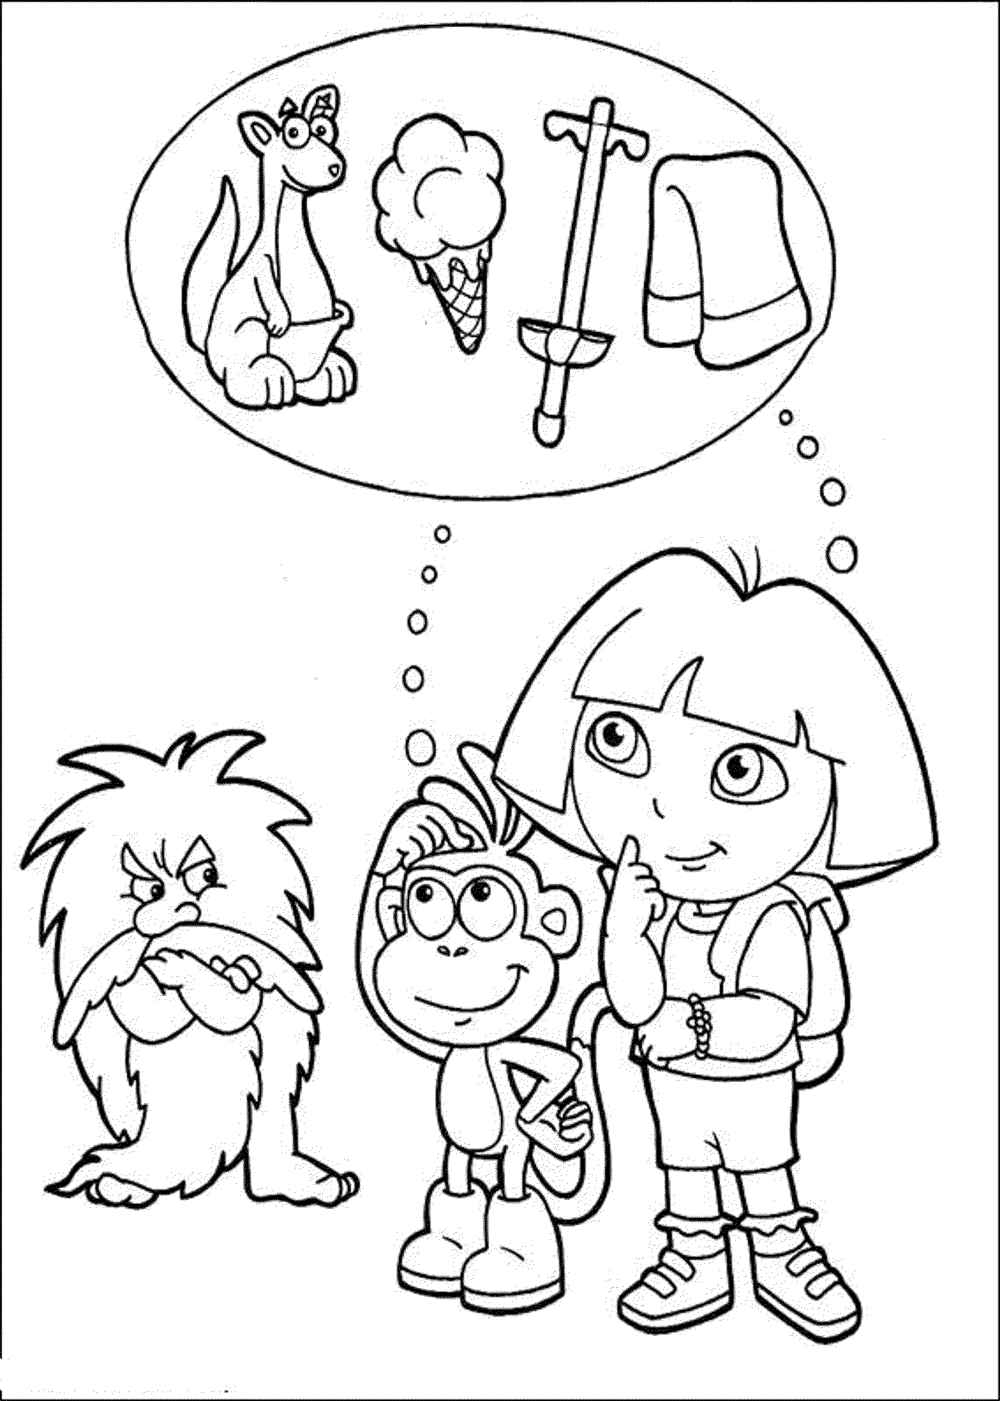 dora color sheets print download dora coloring pages to learn new things dora sheets color